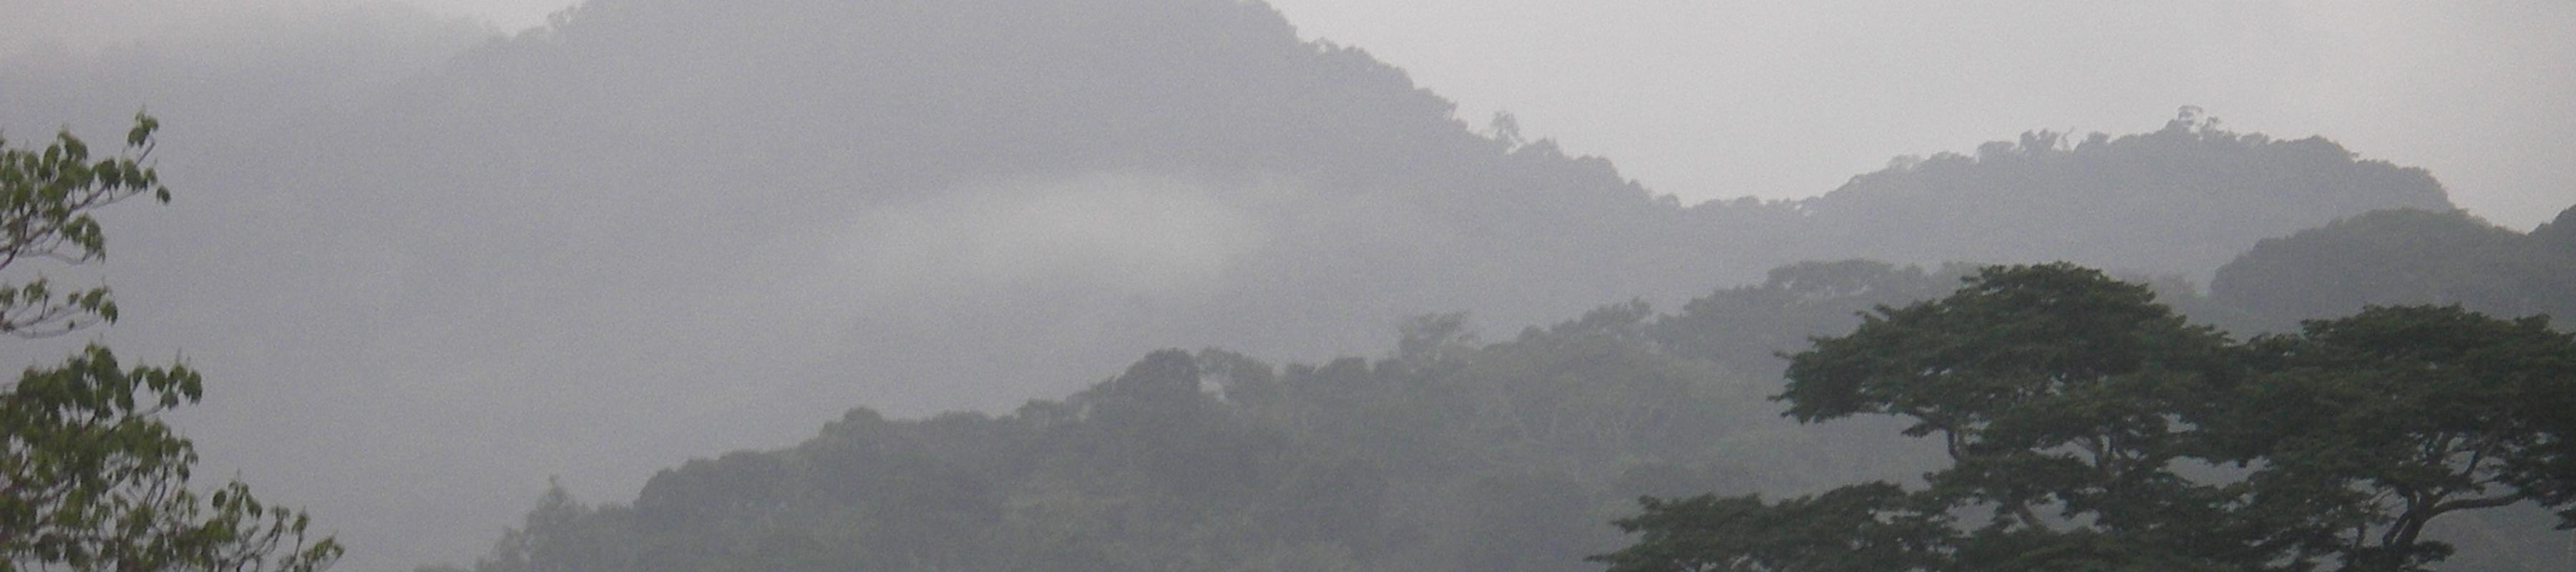 Cloudy forest Cameroon